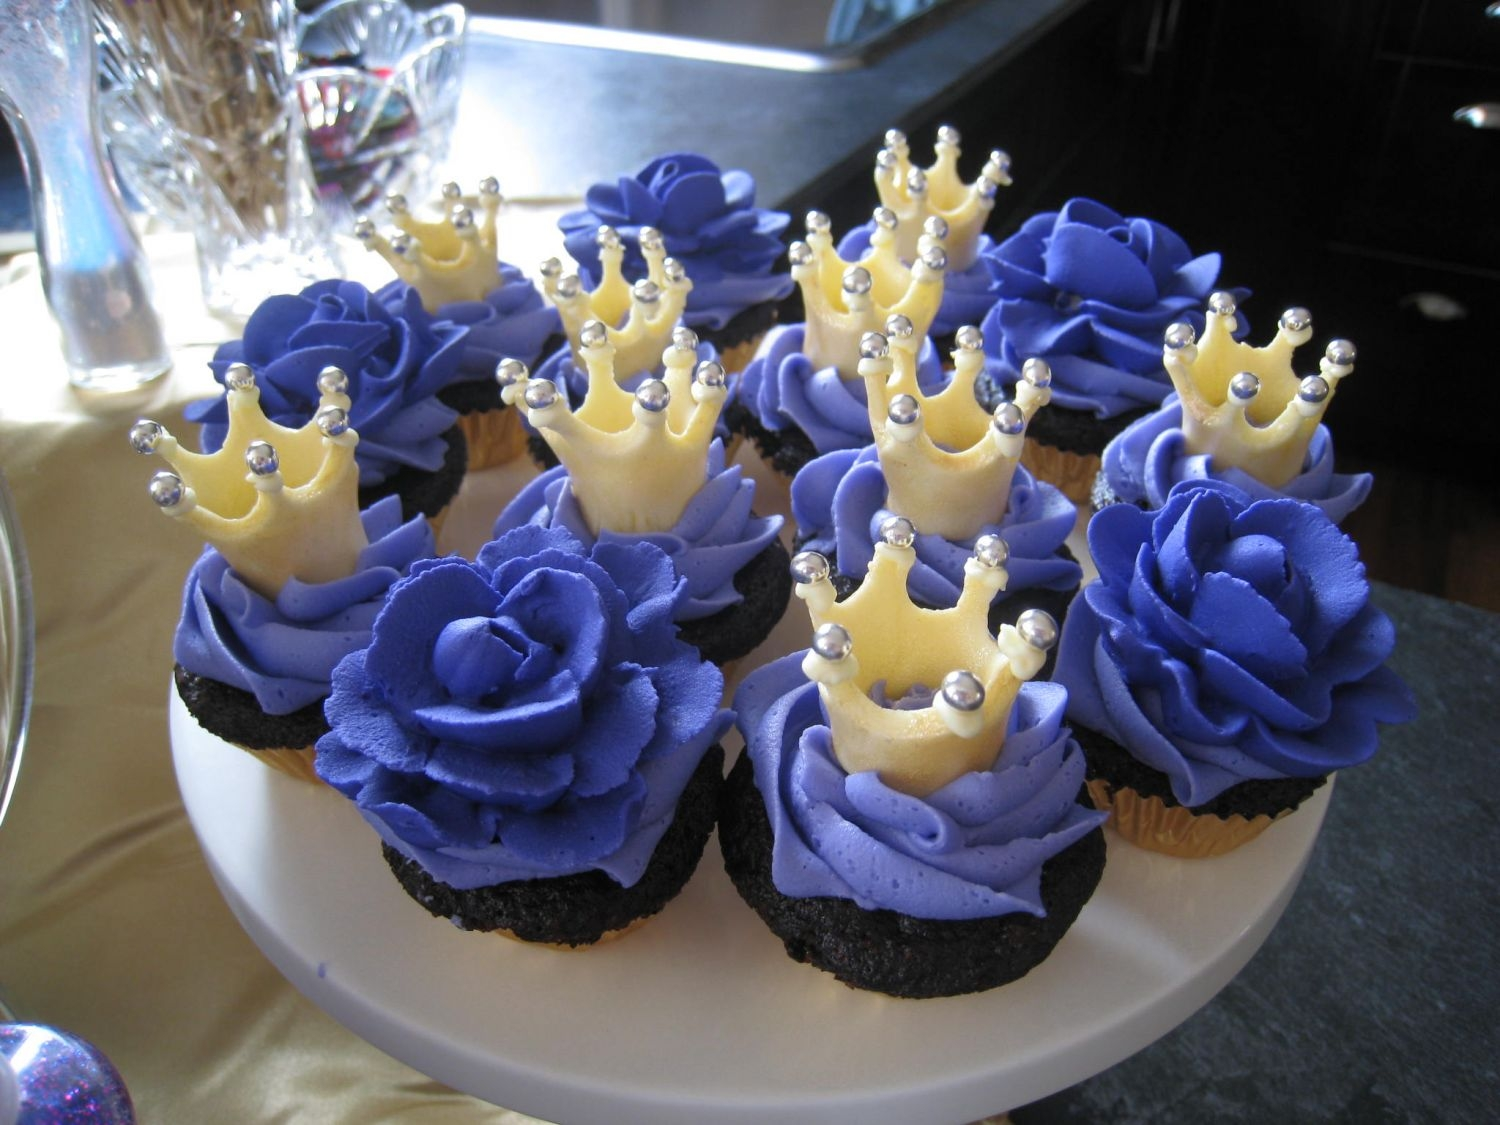 Crowns-N-Roses Cupcakes for the princess party.No sugar added chocolate cupcakes, buttercream icing. MMF crowns painted with gold pearl dust. Royal icing...